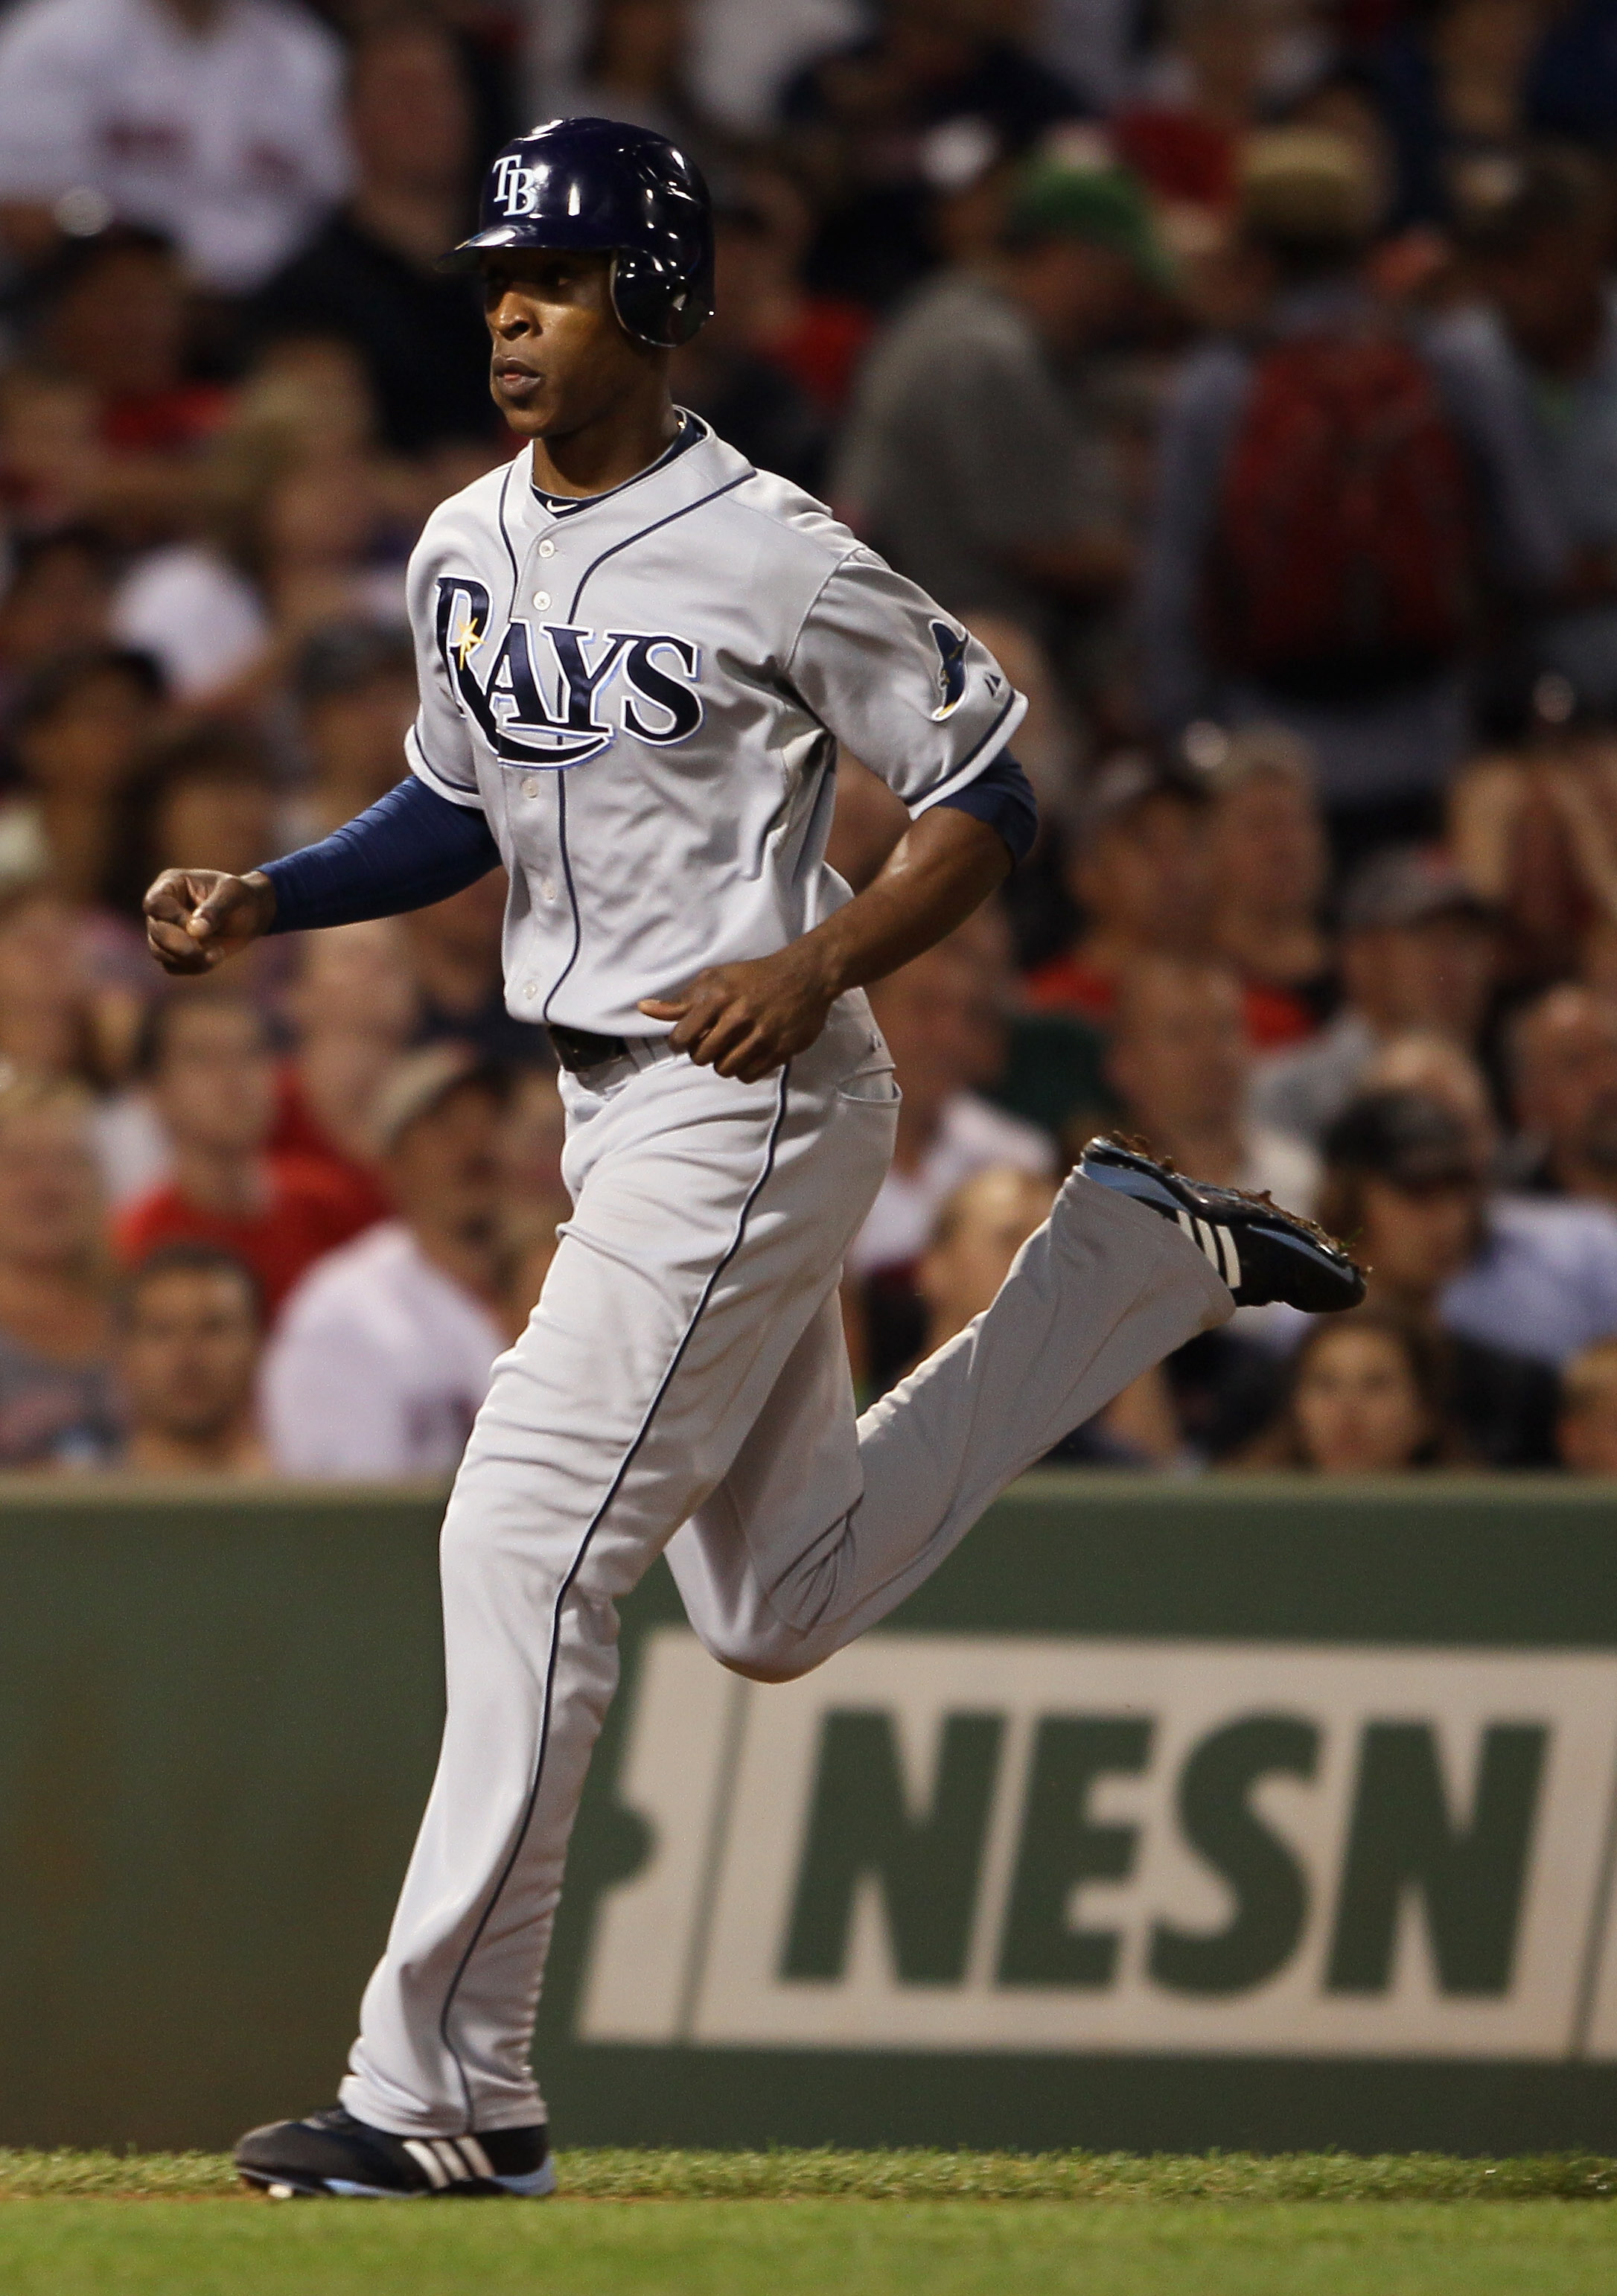 BOSTON - SEPTEMBER 07:  B.J. Upton #2 of the Tampa Bay Rays scores a run in the fourth inning against the Boston Red Sox on September 7, 2010 at Fenway Park in Boston, Massachusetts.  (Photo by Elsa/Getty Images)